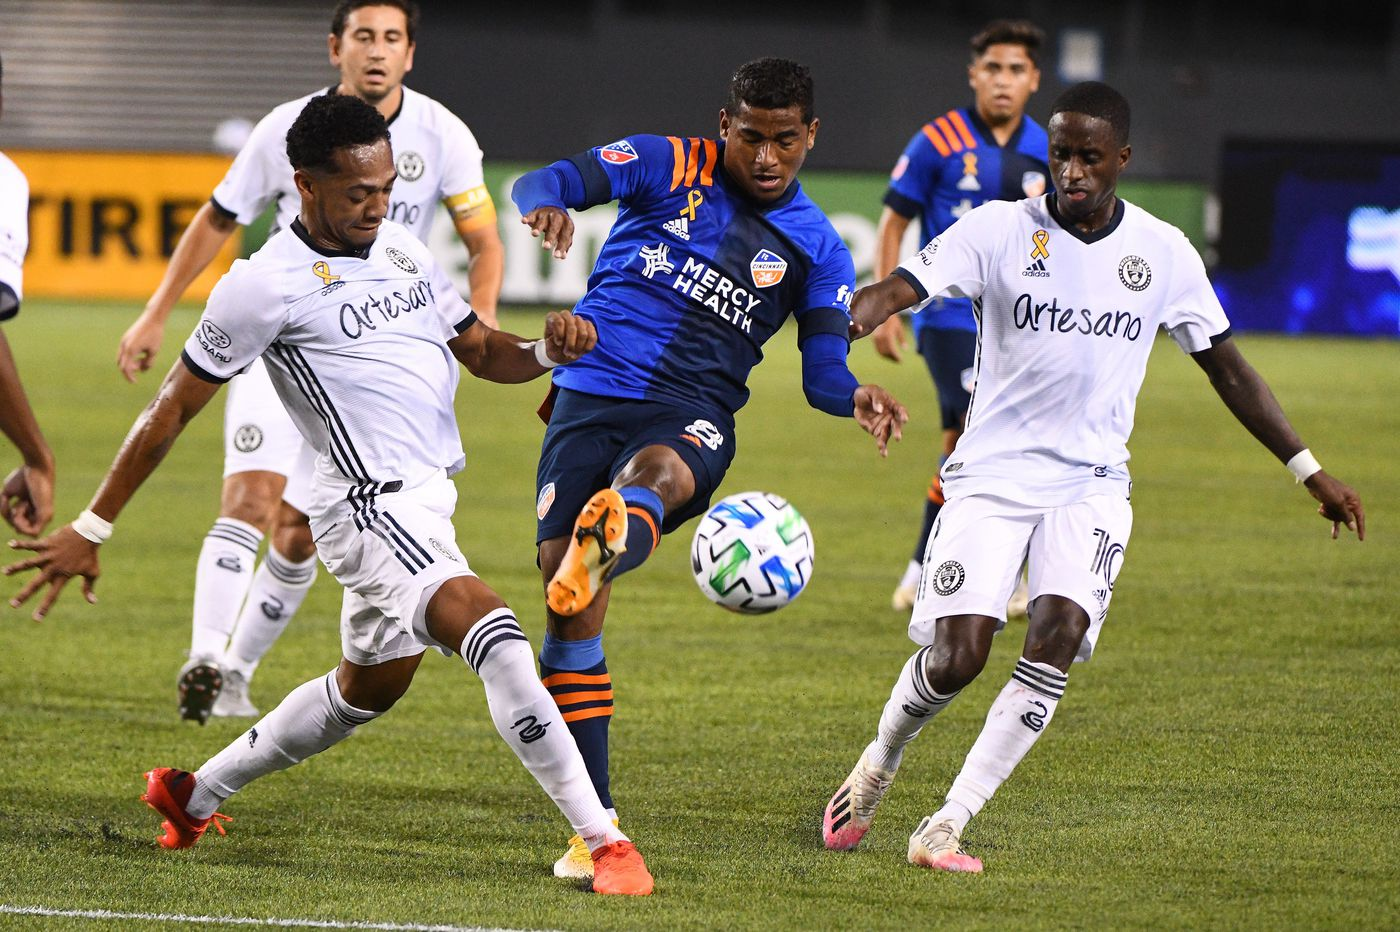 Union play ugly scoreless tie with FC Cincinnati, and lose Alejandro Bedoya to yellow card suspension